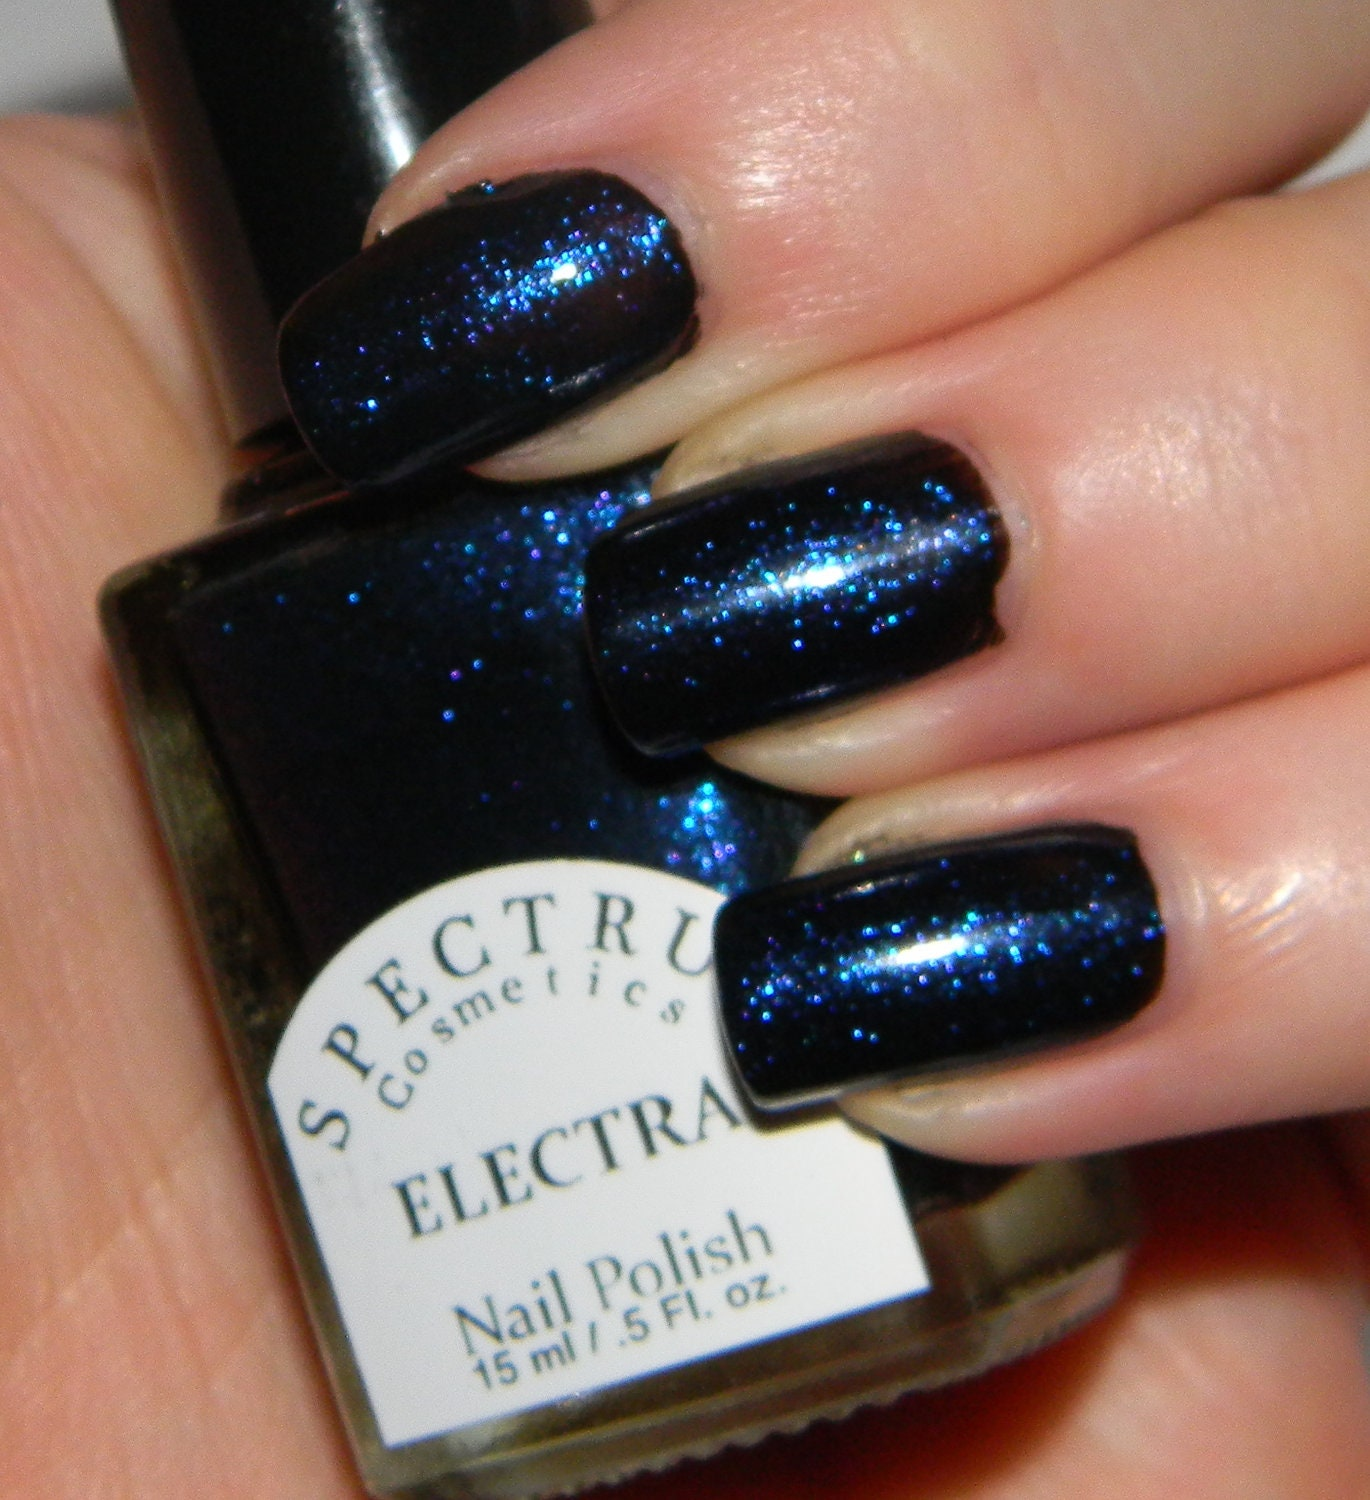 Black Nail Polish with Blue Sparkle ELECTRA